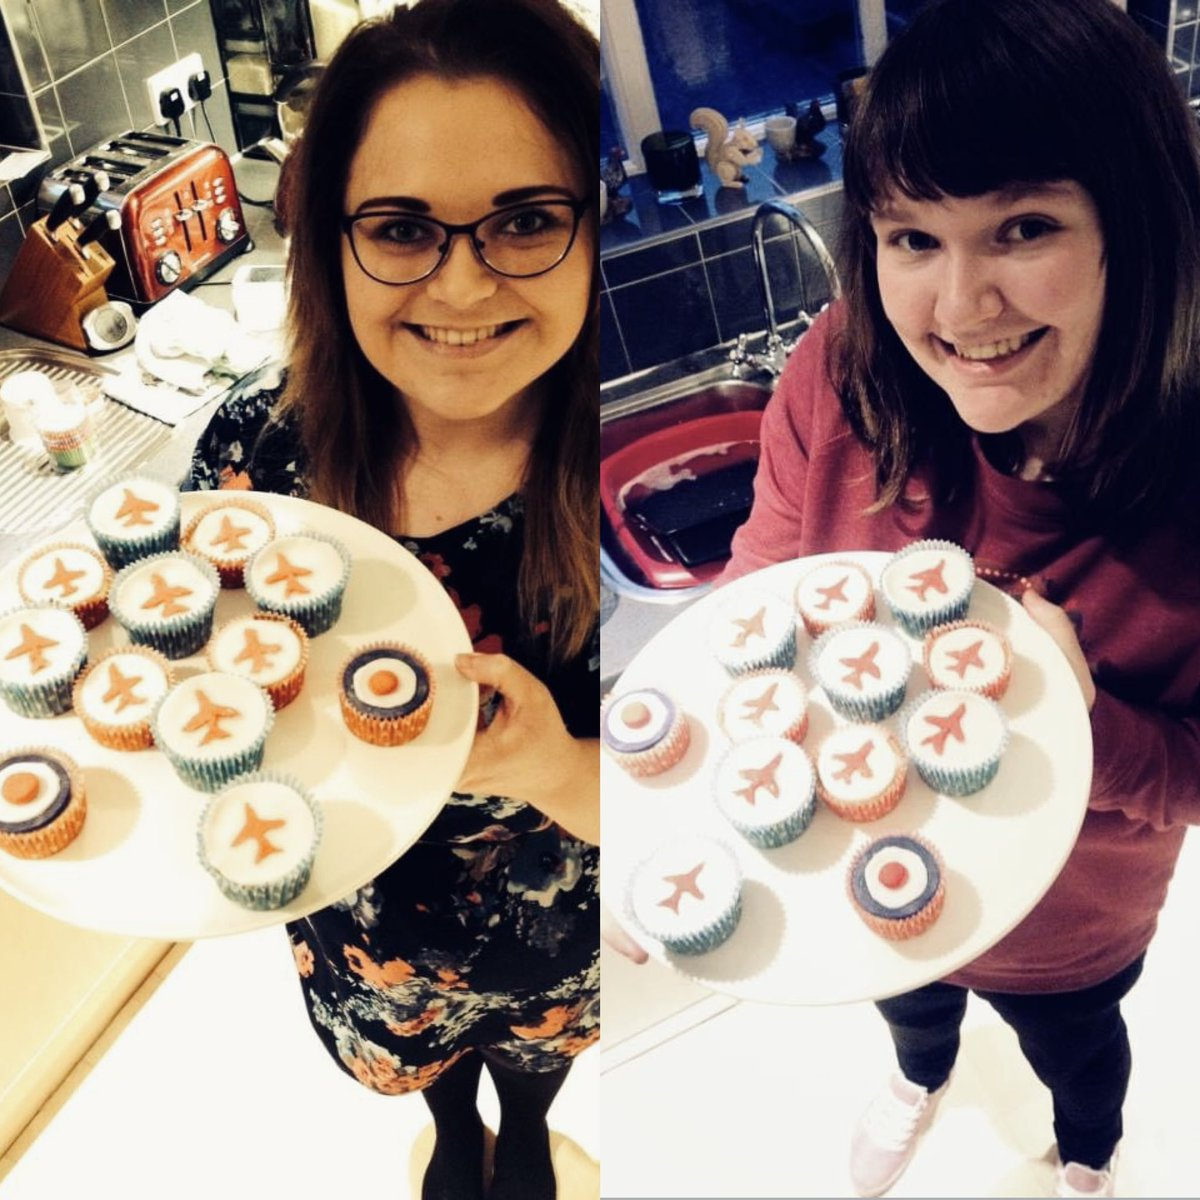 Missing times like these at the mo... my bestie @mustbesung had popped over to cheer me up, so we whipped up some Red Arrows cupcakes!🙈 Can't believe this was 6 years ago matey... let's bake something awesome when we can finally meet up again!☺️♥️ #WednesdayMotivation #RedArrows